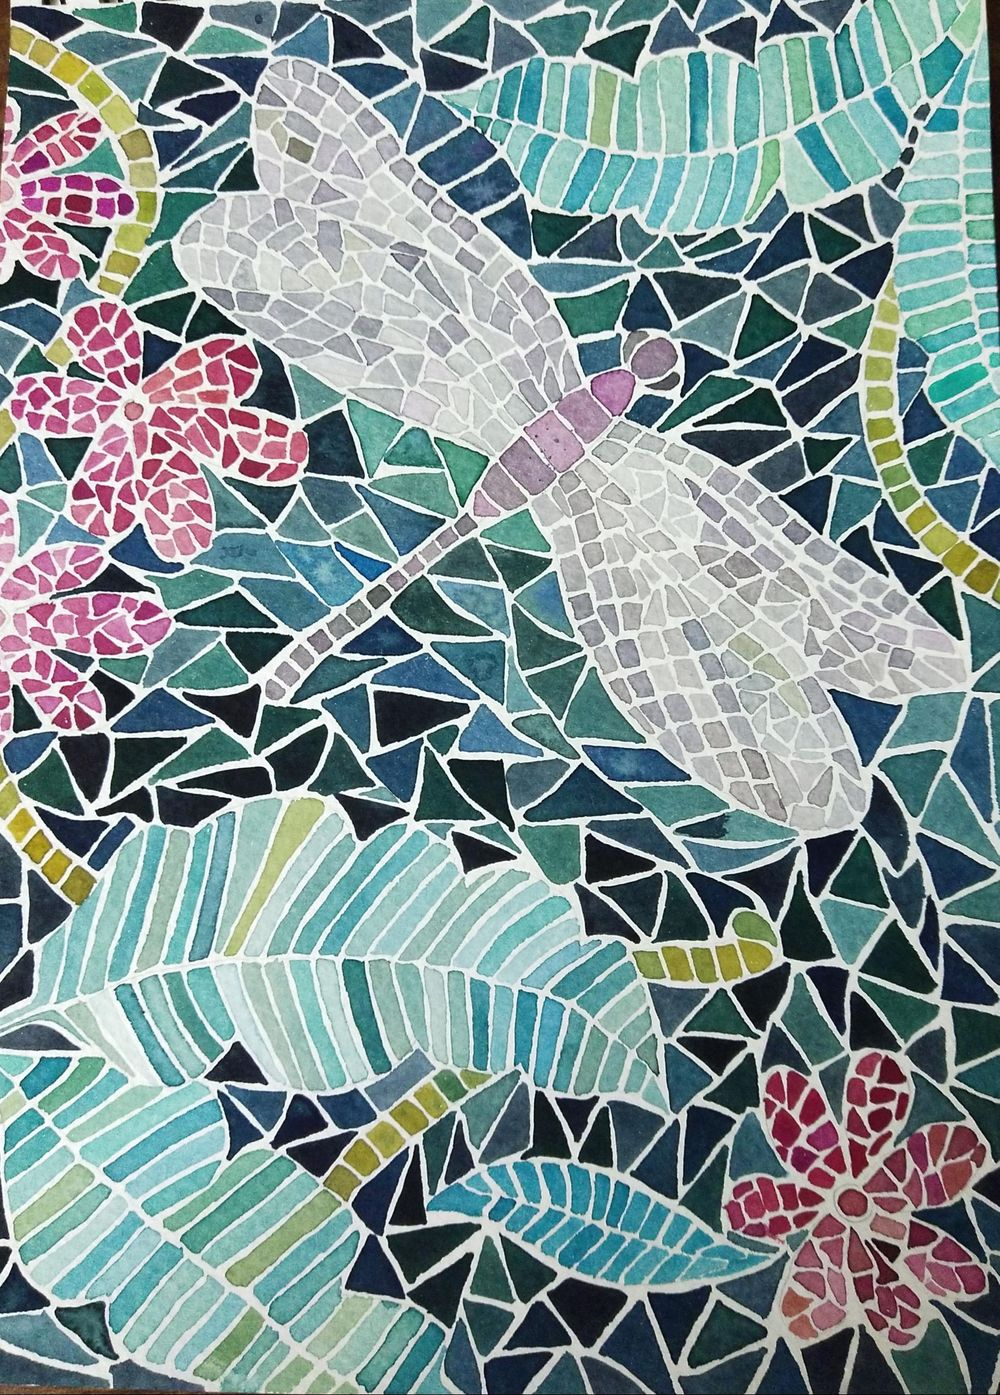 watercolour mosaic painting - image 1 - student project